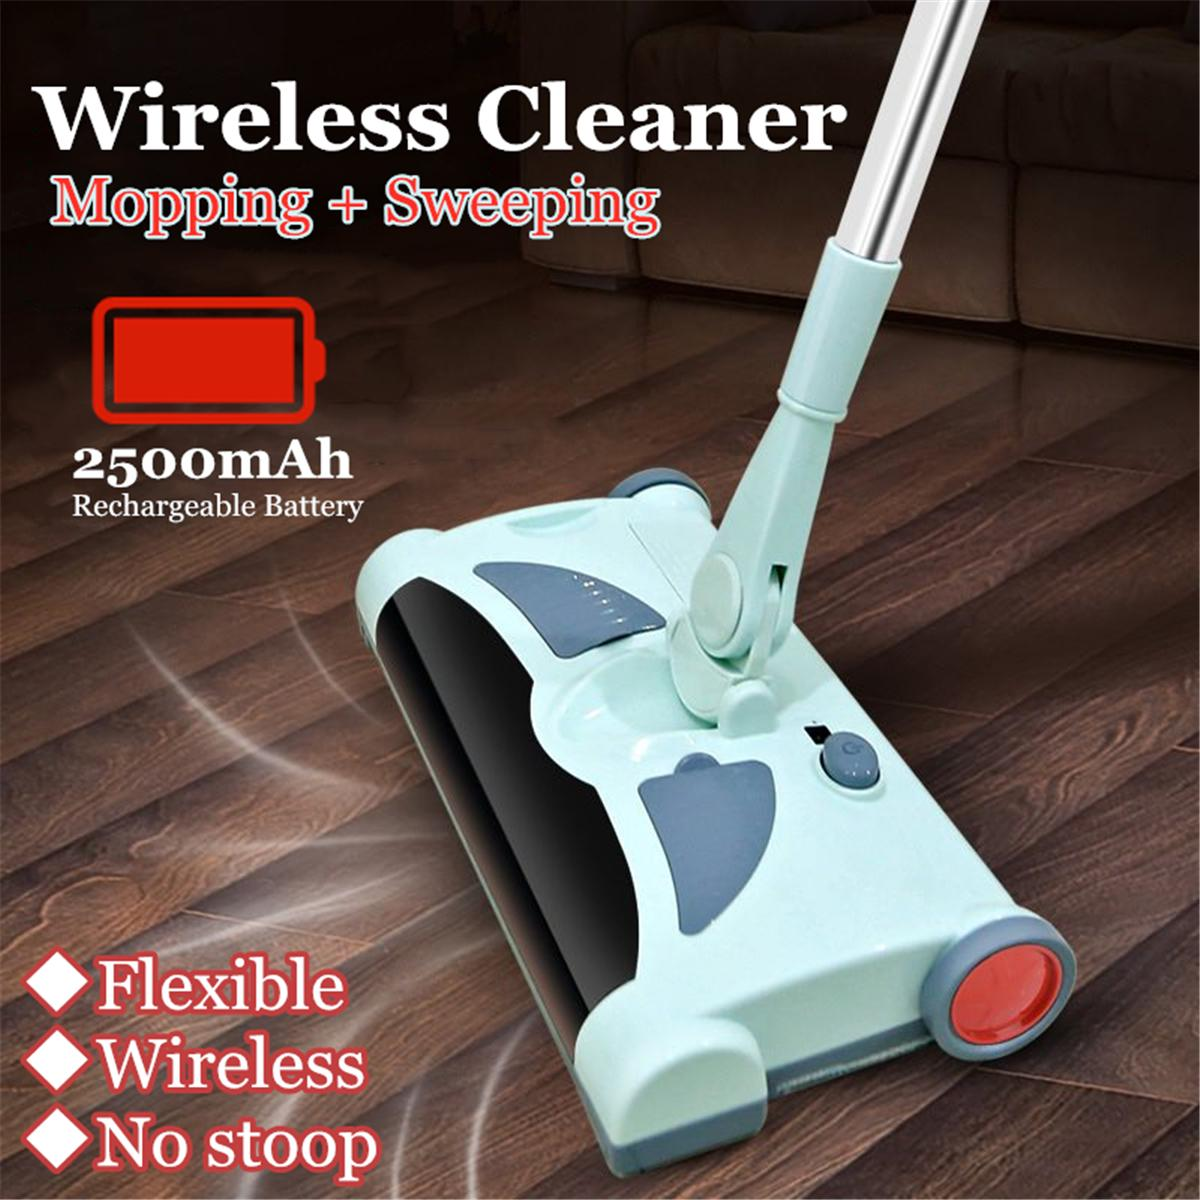 2 In 1 Electric Wireless Vacuum Spin Sweeper Broom Hard Floor Cleaning Mop